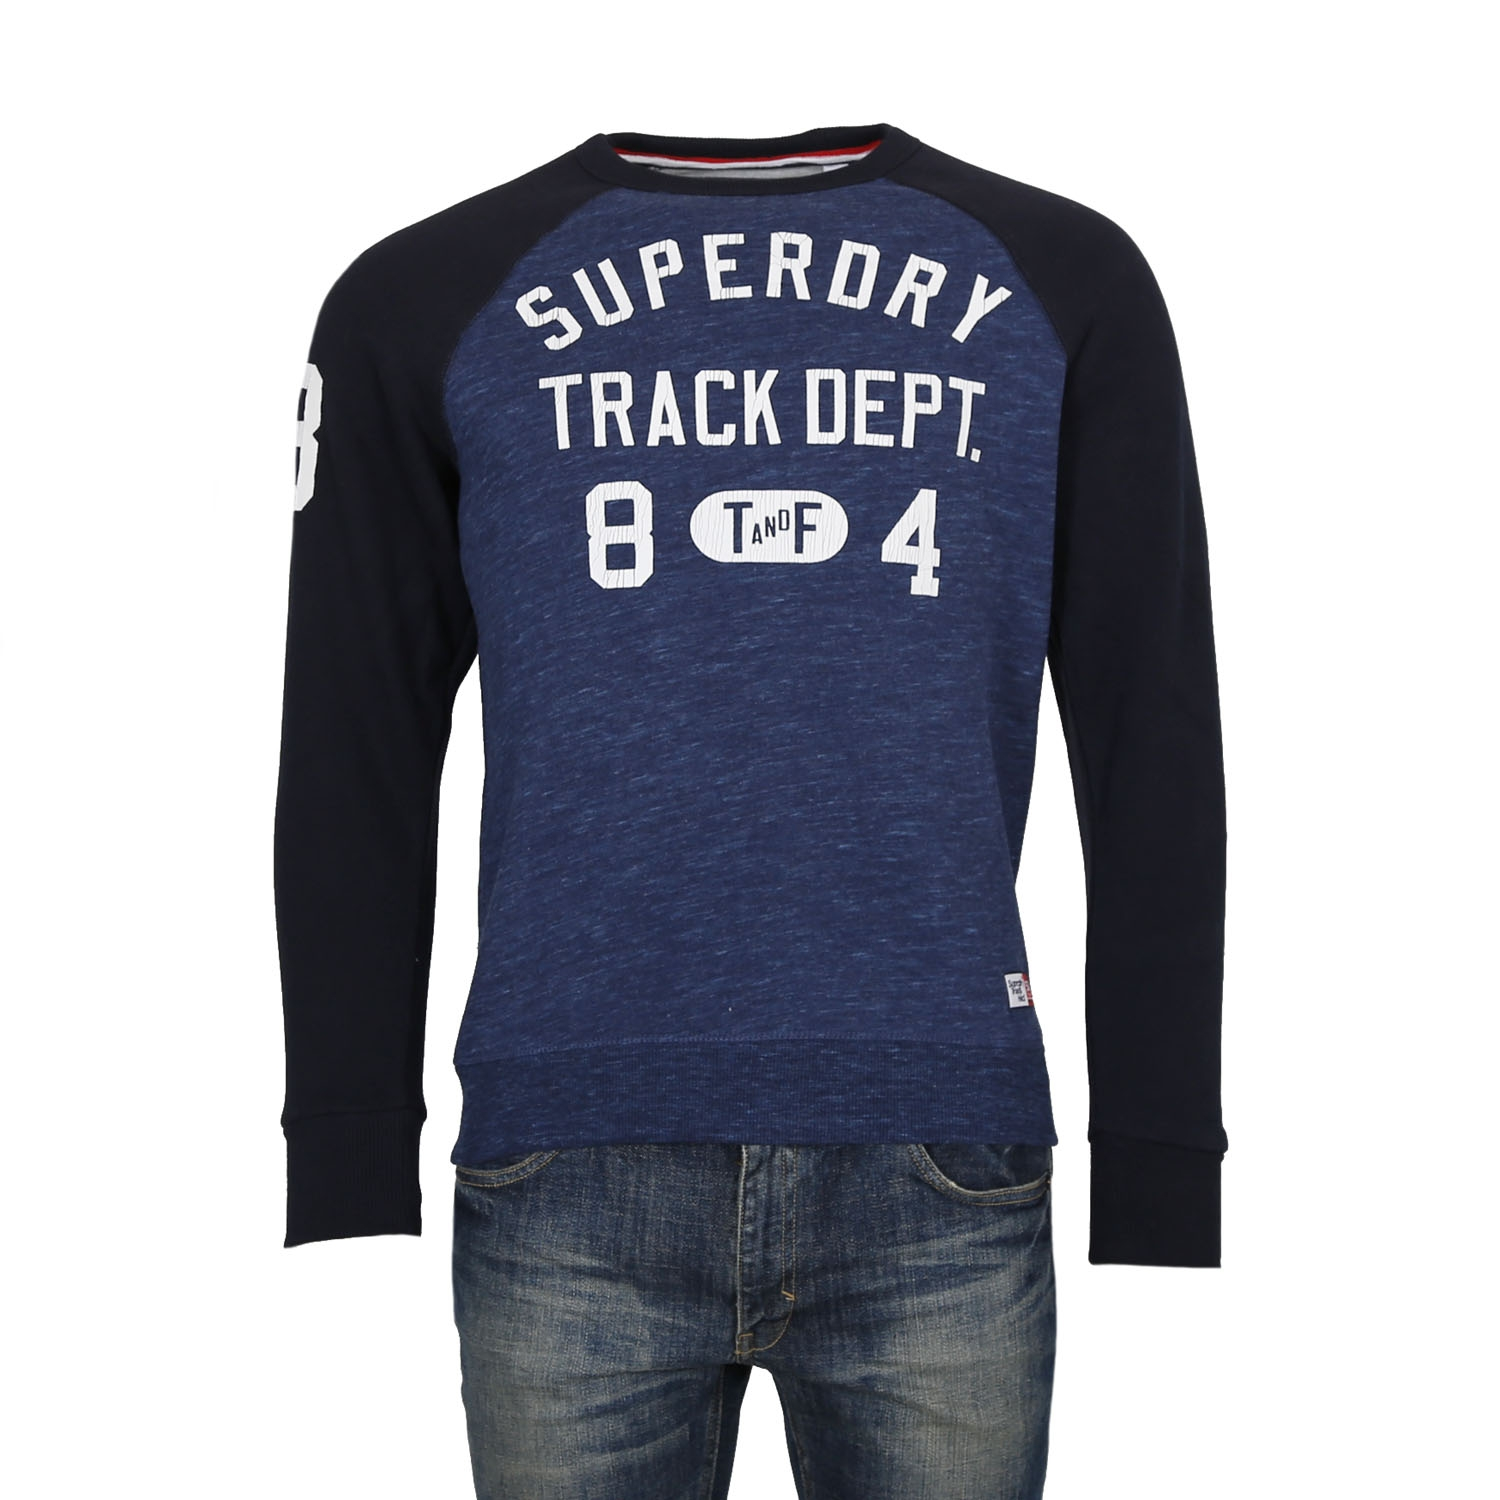 Superdry Trackster Baseball Sweater M ( M20012PP00-FL0 ) ρούχα    άνδρας    sweaters   hoodies   ζακέτες